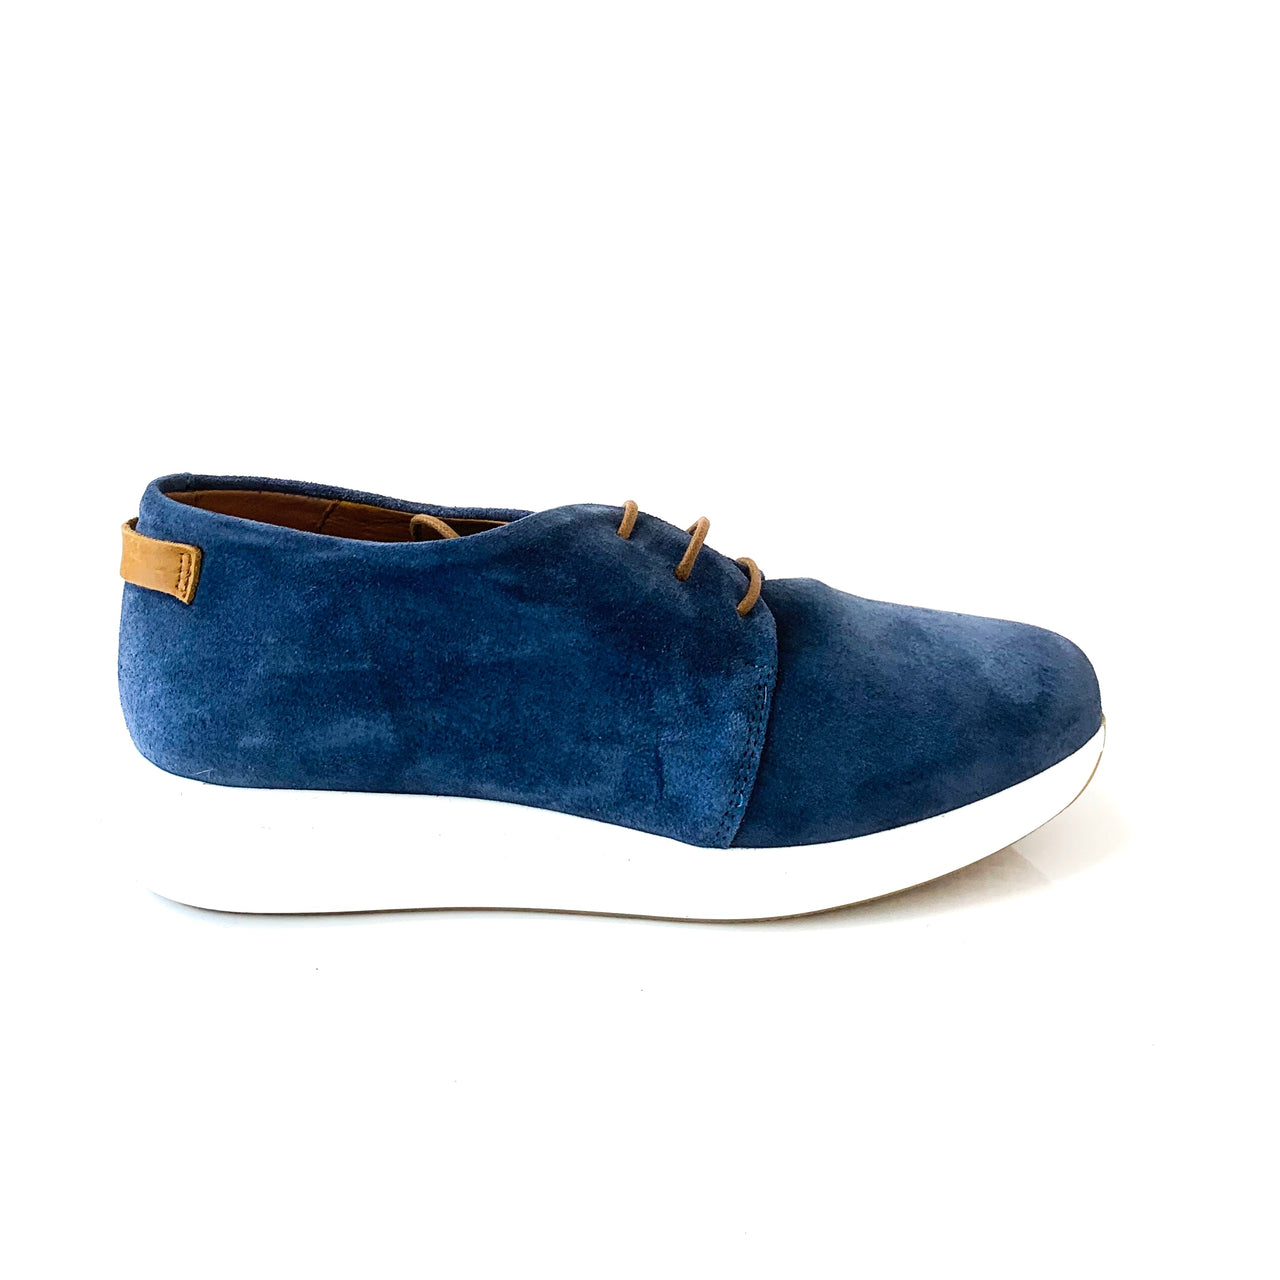 ALEX | Blue Suede Elevated Runners - TrystShoes